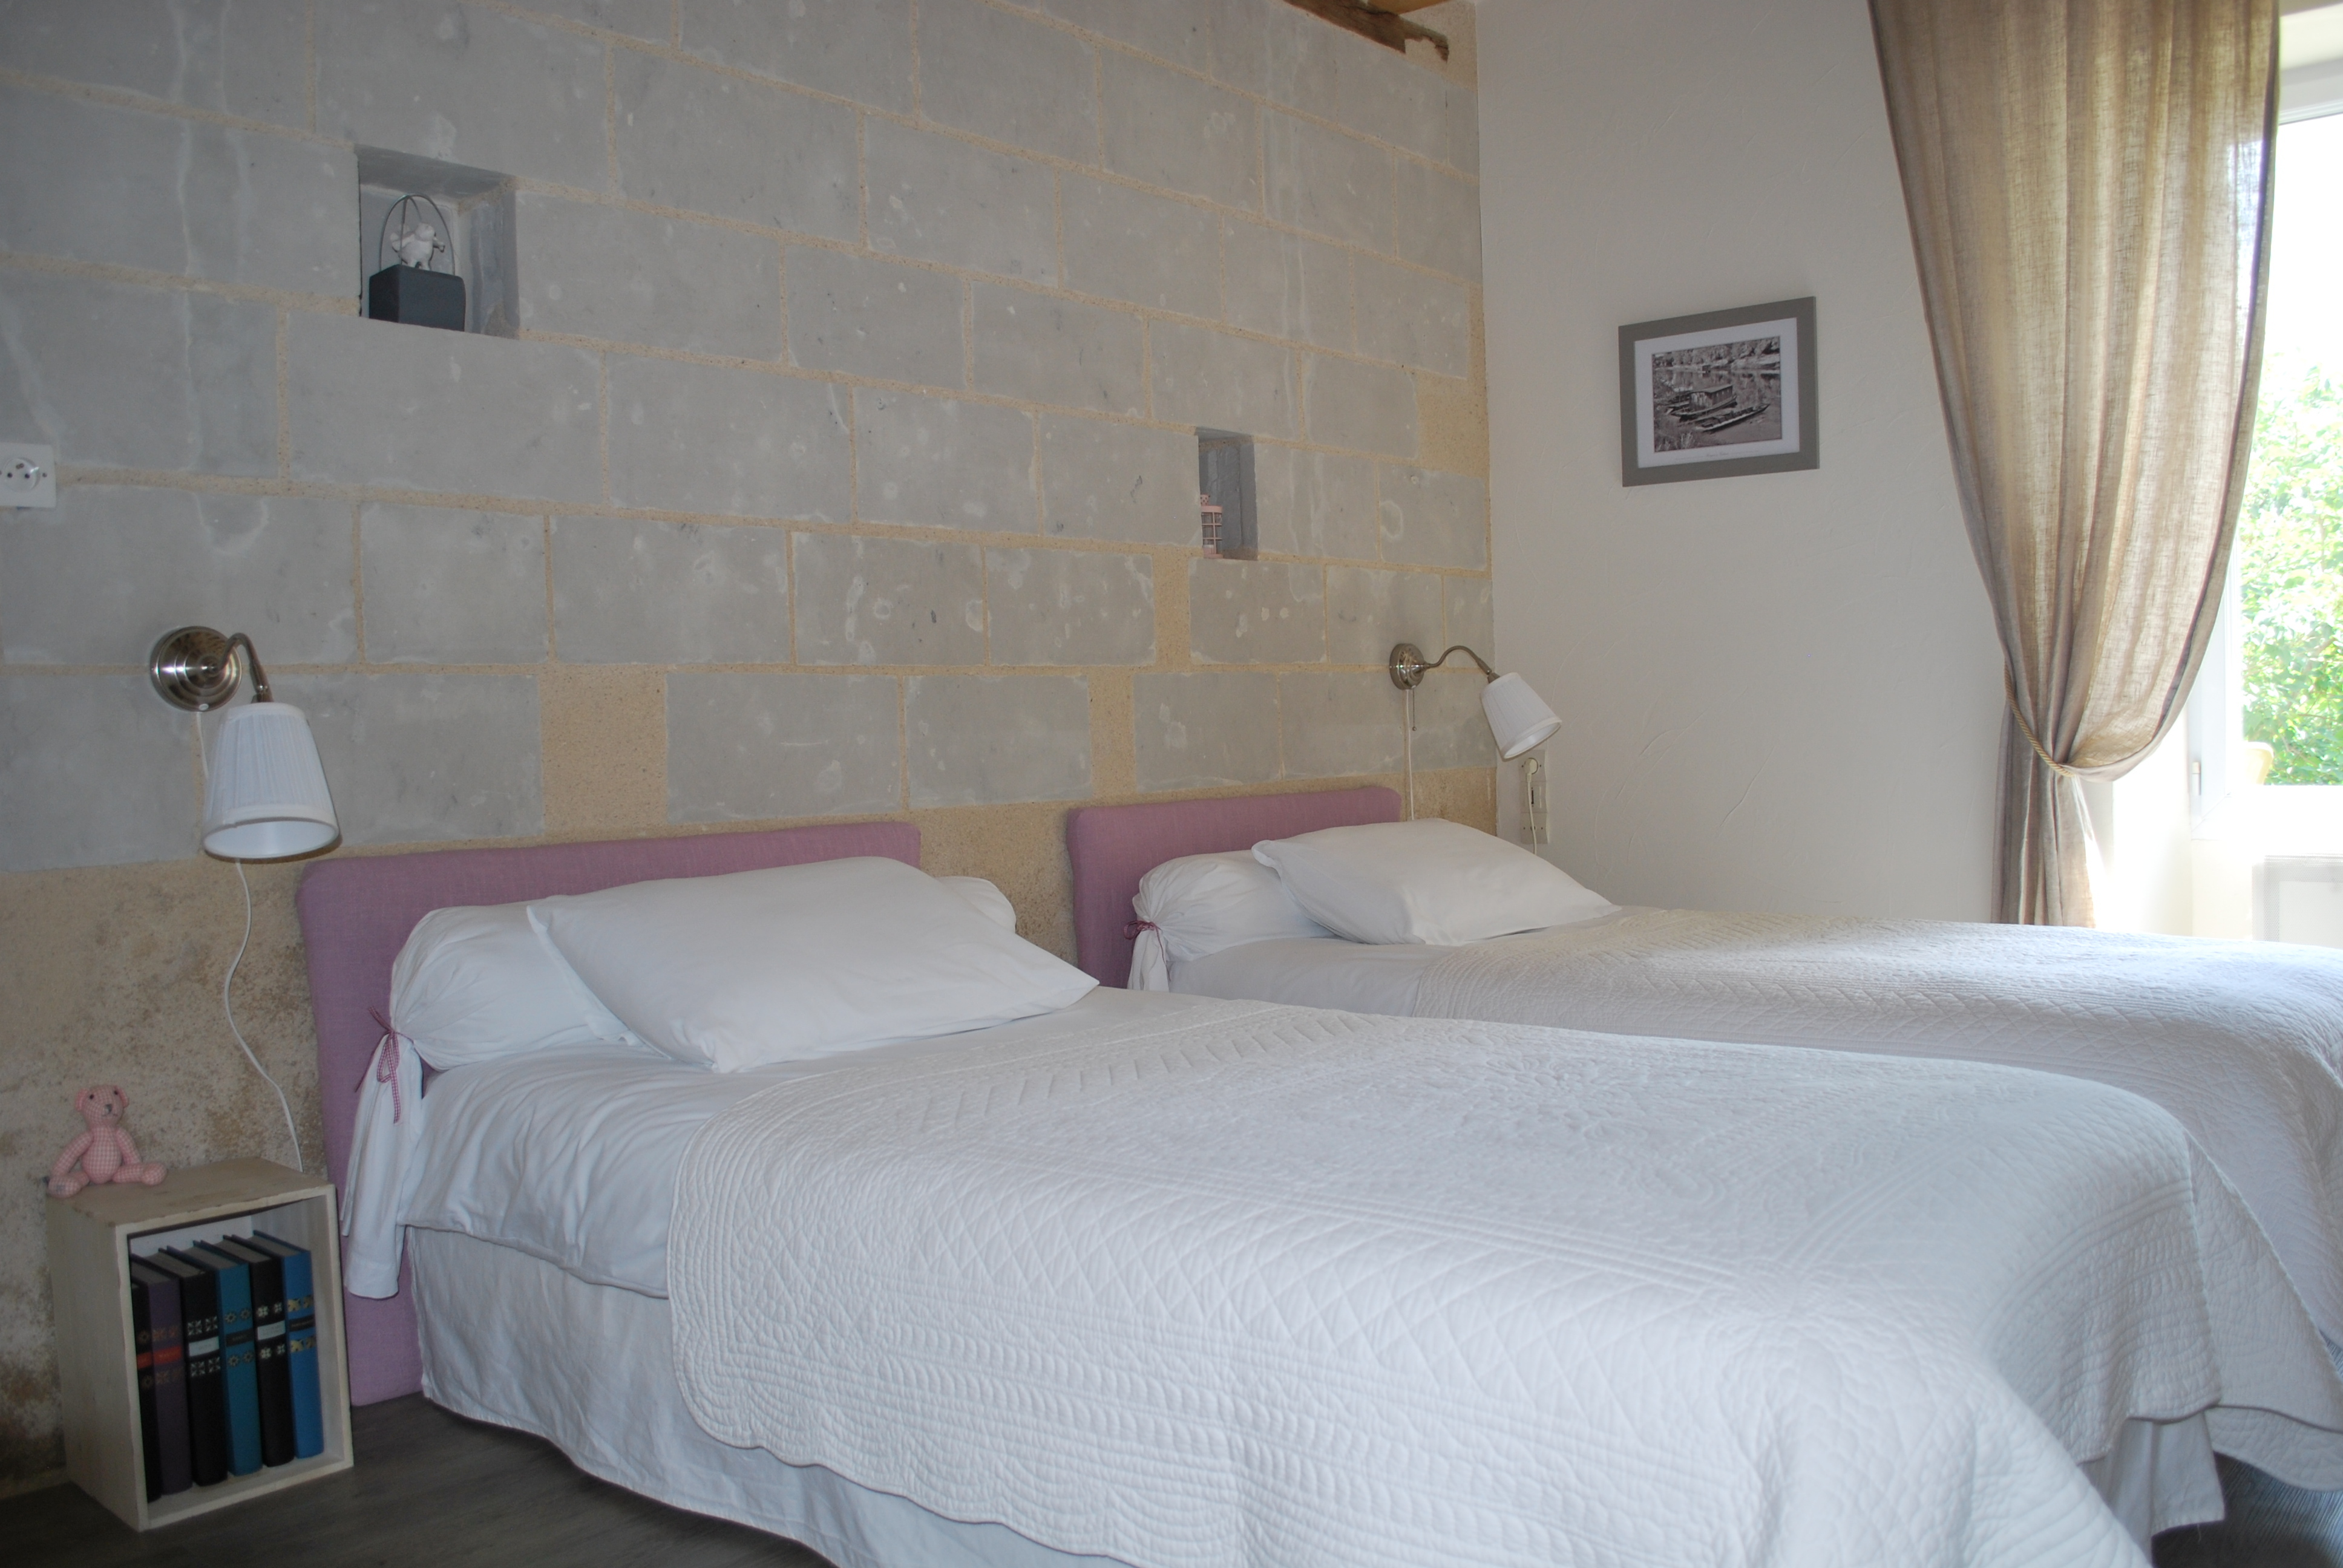 Chambres d 39 h tes pr s d 39 angers chez laure m rs erign for Chambre hote angers